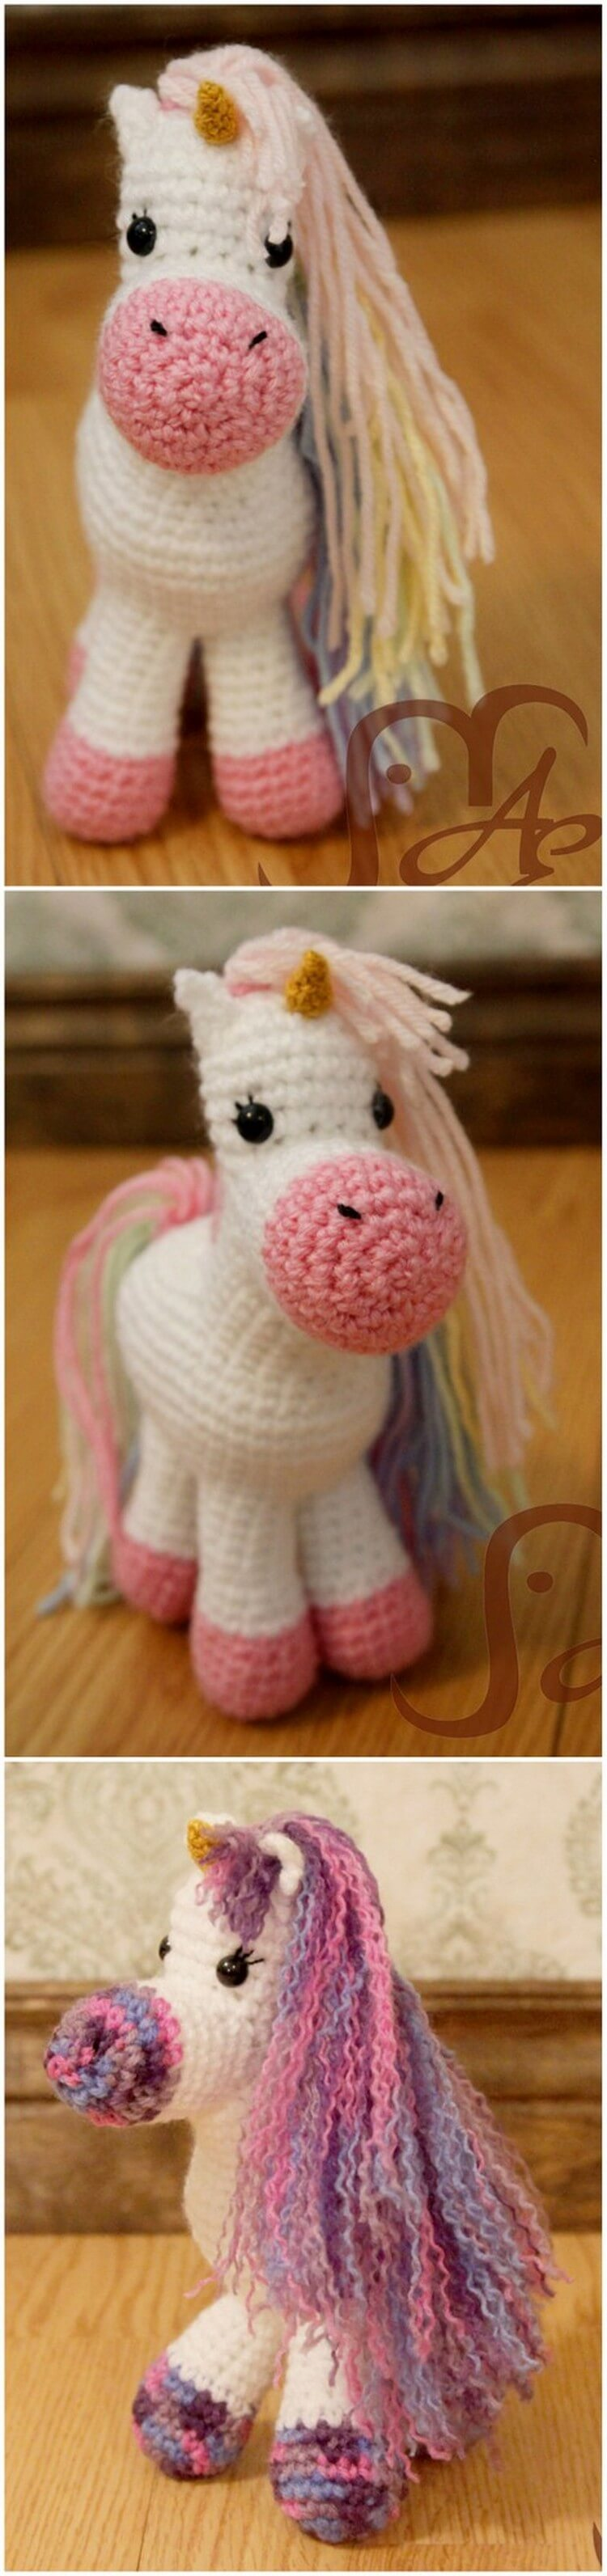 Crochet Unicorn Pattern (14)